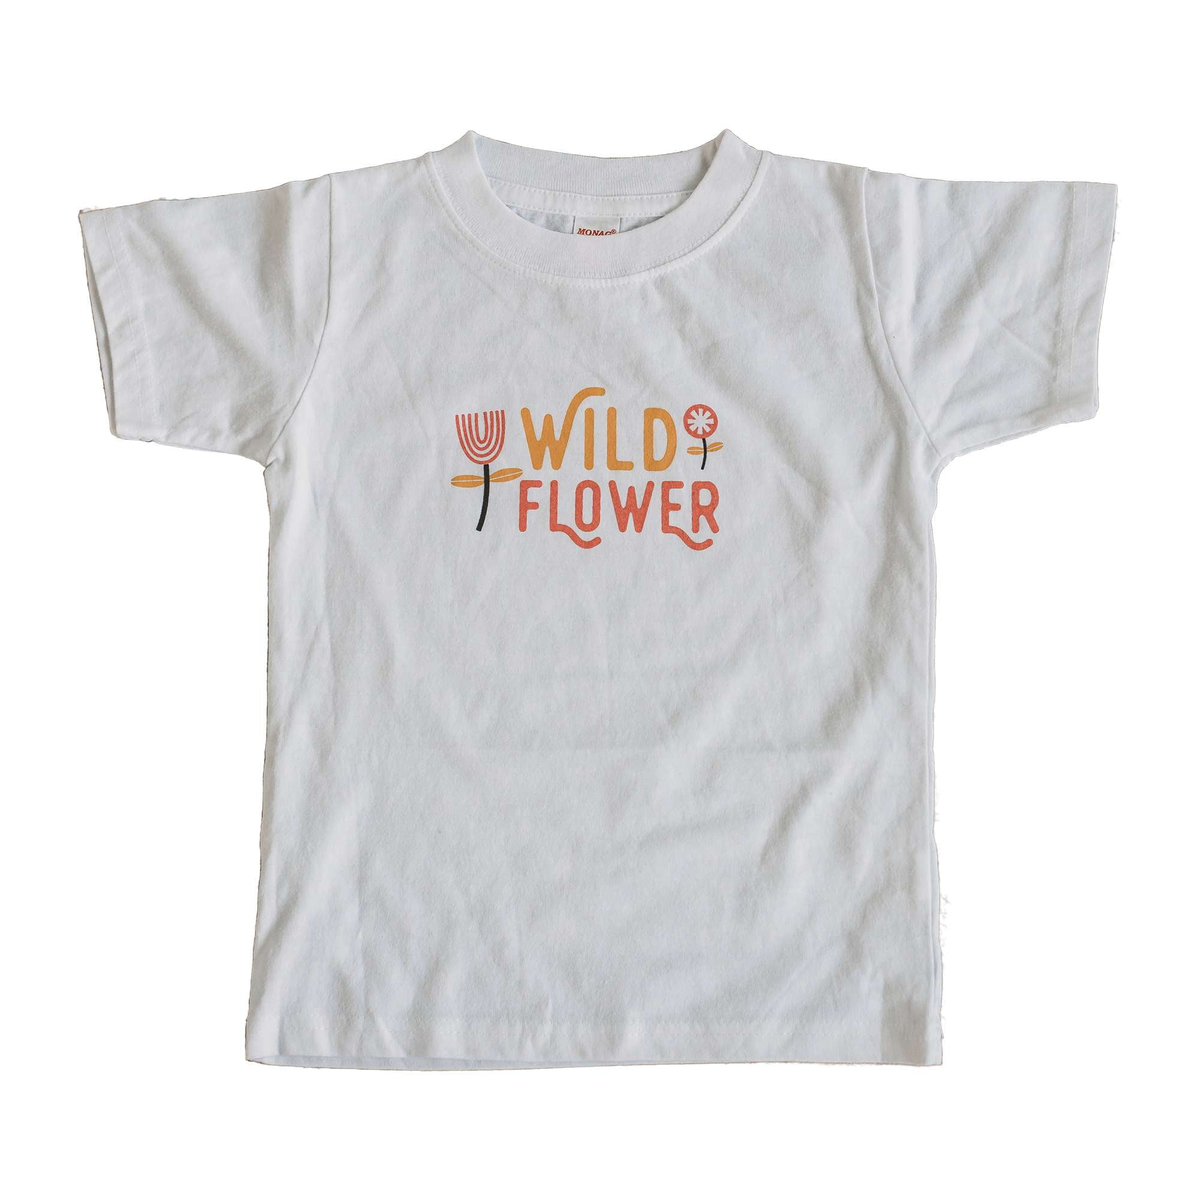 PRE-ORDER - Wild Flower Kid's T-shirt - Sweetpea and Co.